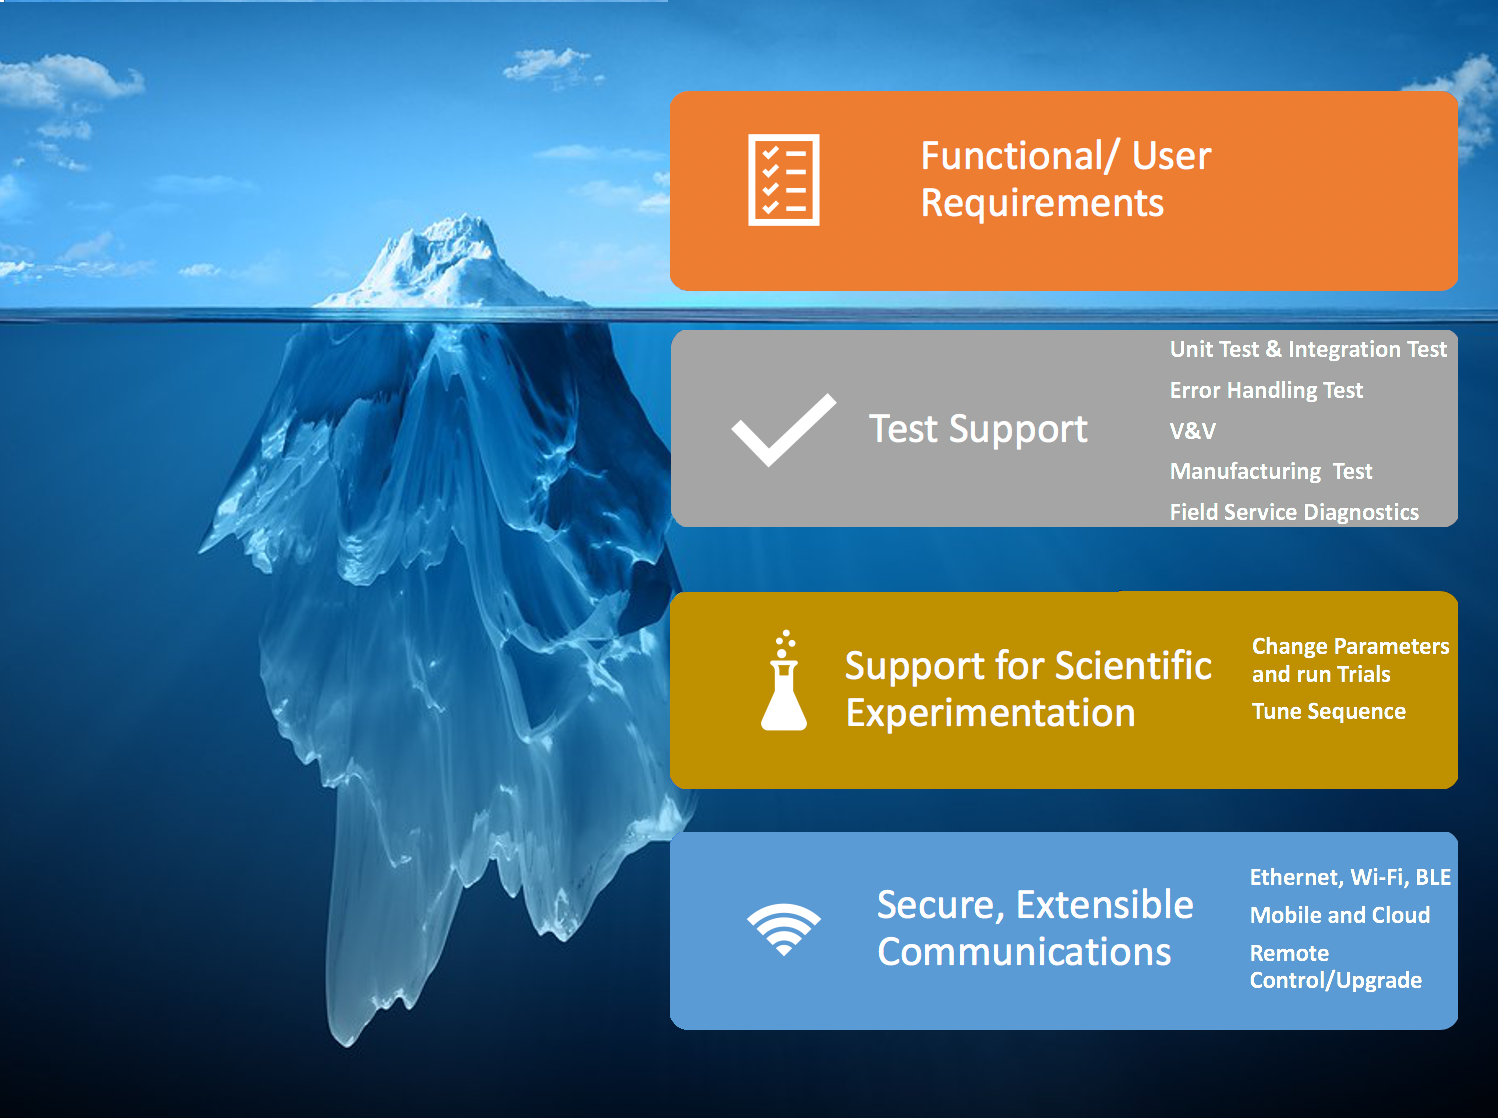 tip of the iceberg functional user requirements. The rest of the iceberg is listed as test support, support for scientific experimentation, secure extendable communications